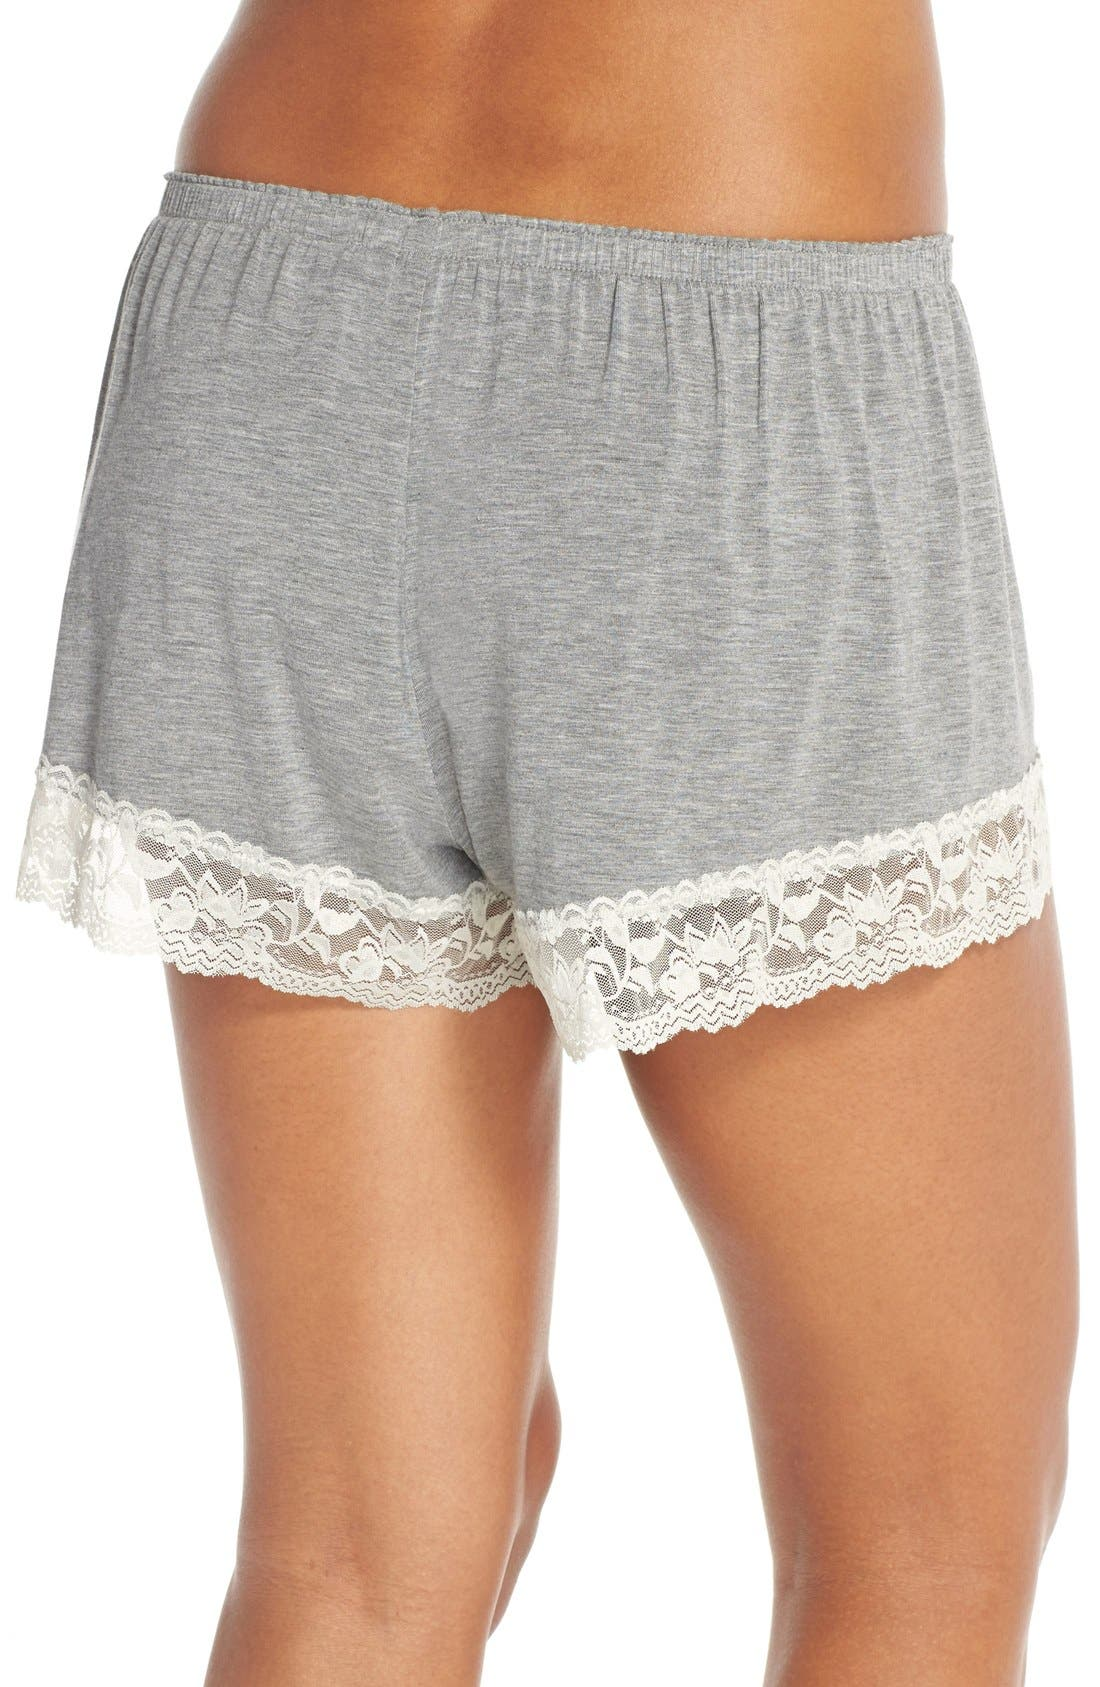 Flora Nikrooz Snuggle Lounge Shorts,                             Alternate thumbnail 9, color,                             HEATHER GREY